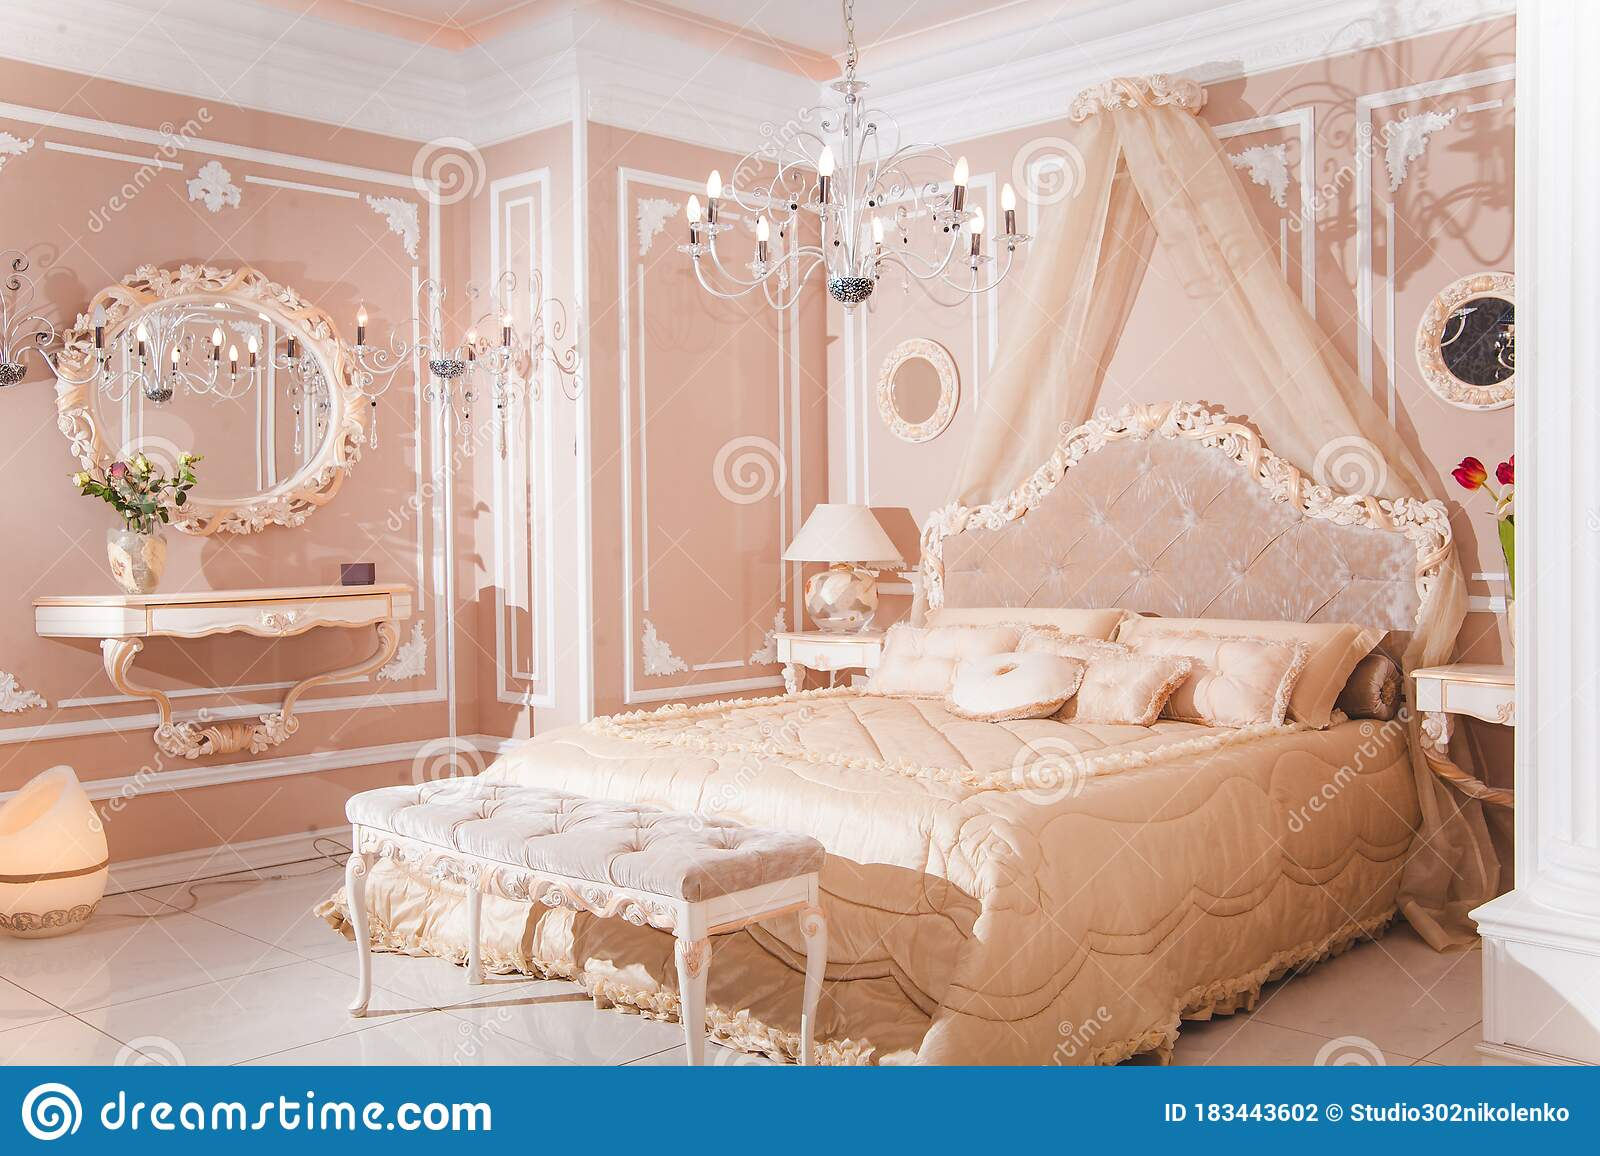 Royal Bedroom In Pastel Colors Classic Style Stock Photo Image Of Interior Decorating 183443602